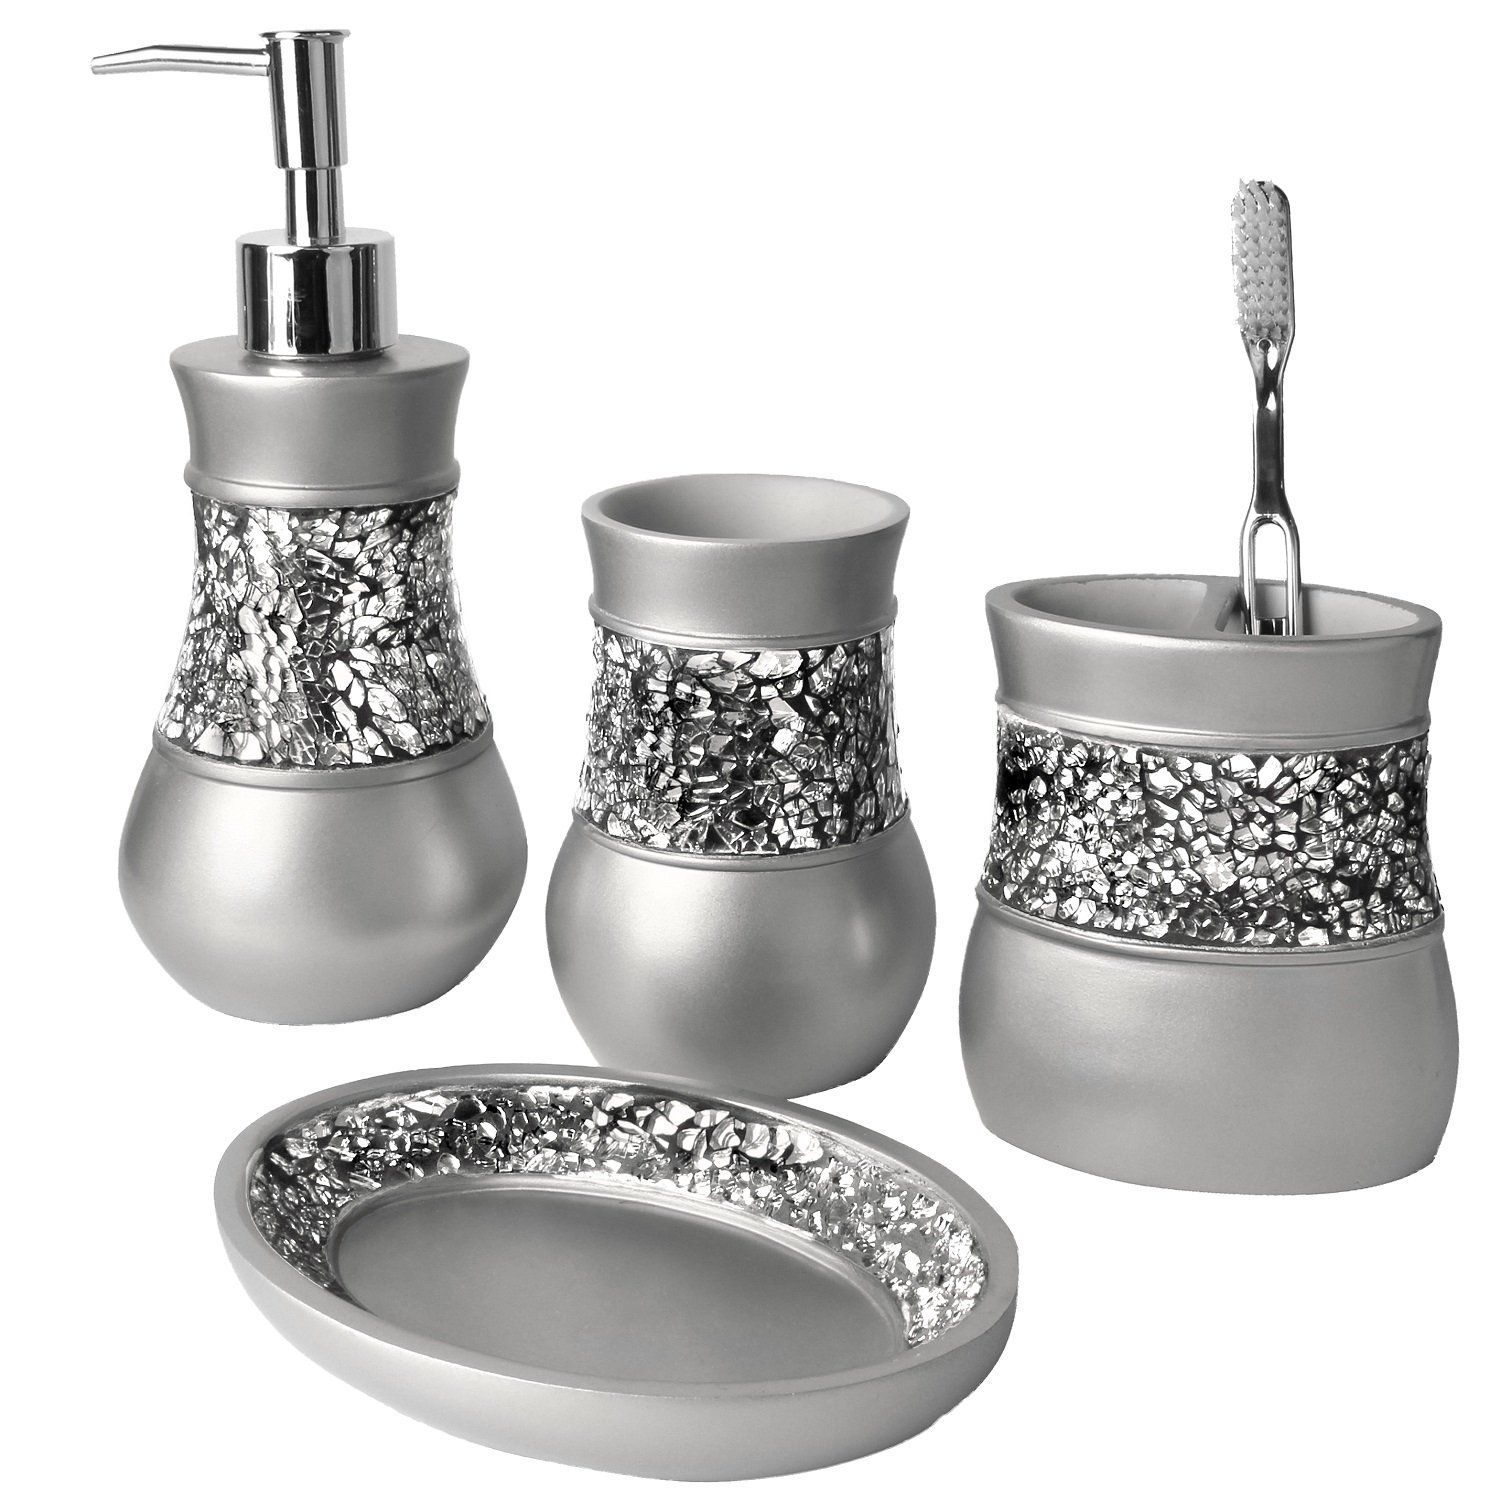 Creative Scents Brushed Nickel Bath Ensemble, 4 Piece Bathroom ...